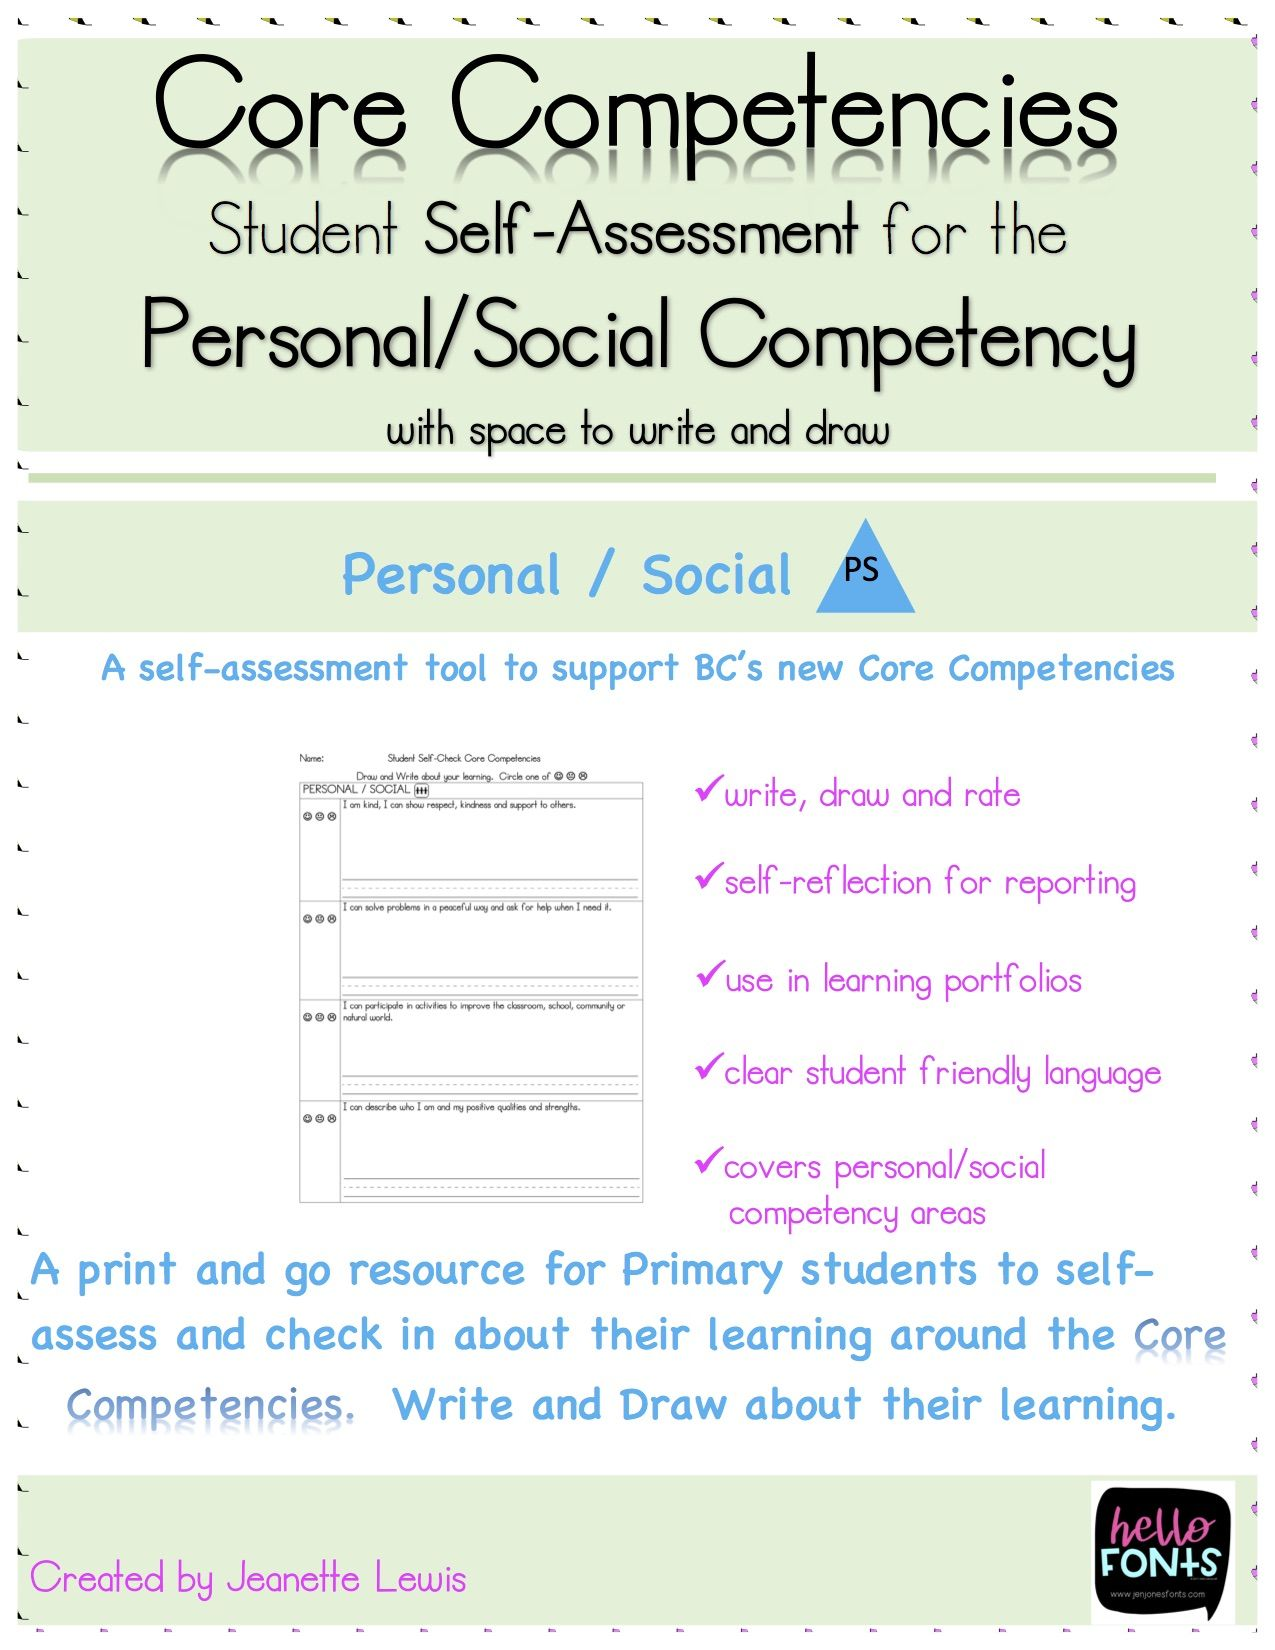 PersonalSocial Core Competency SelfAssessment With Space For